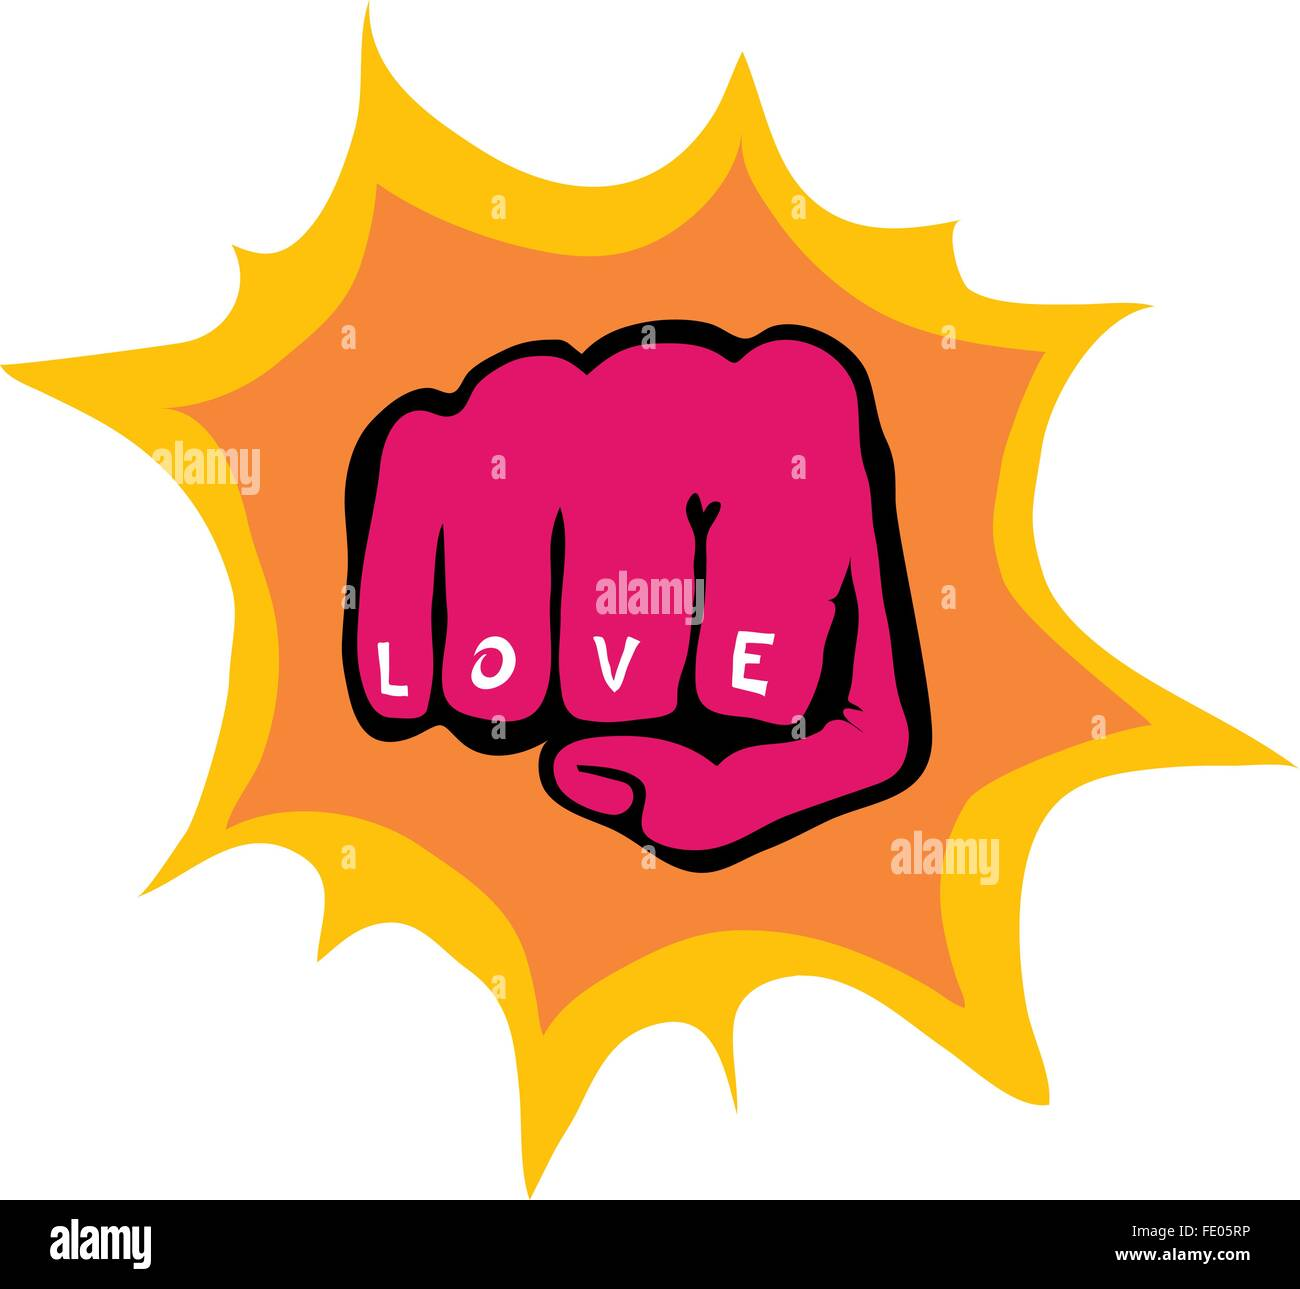 Fight for love - Stock Image